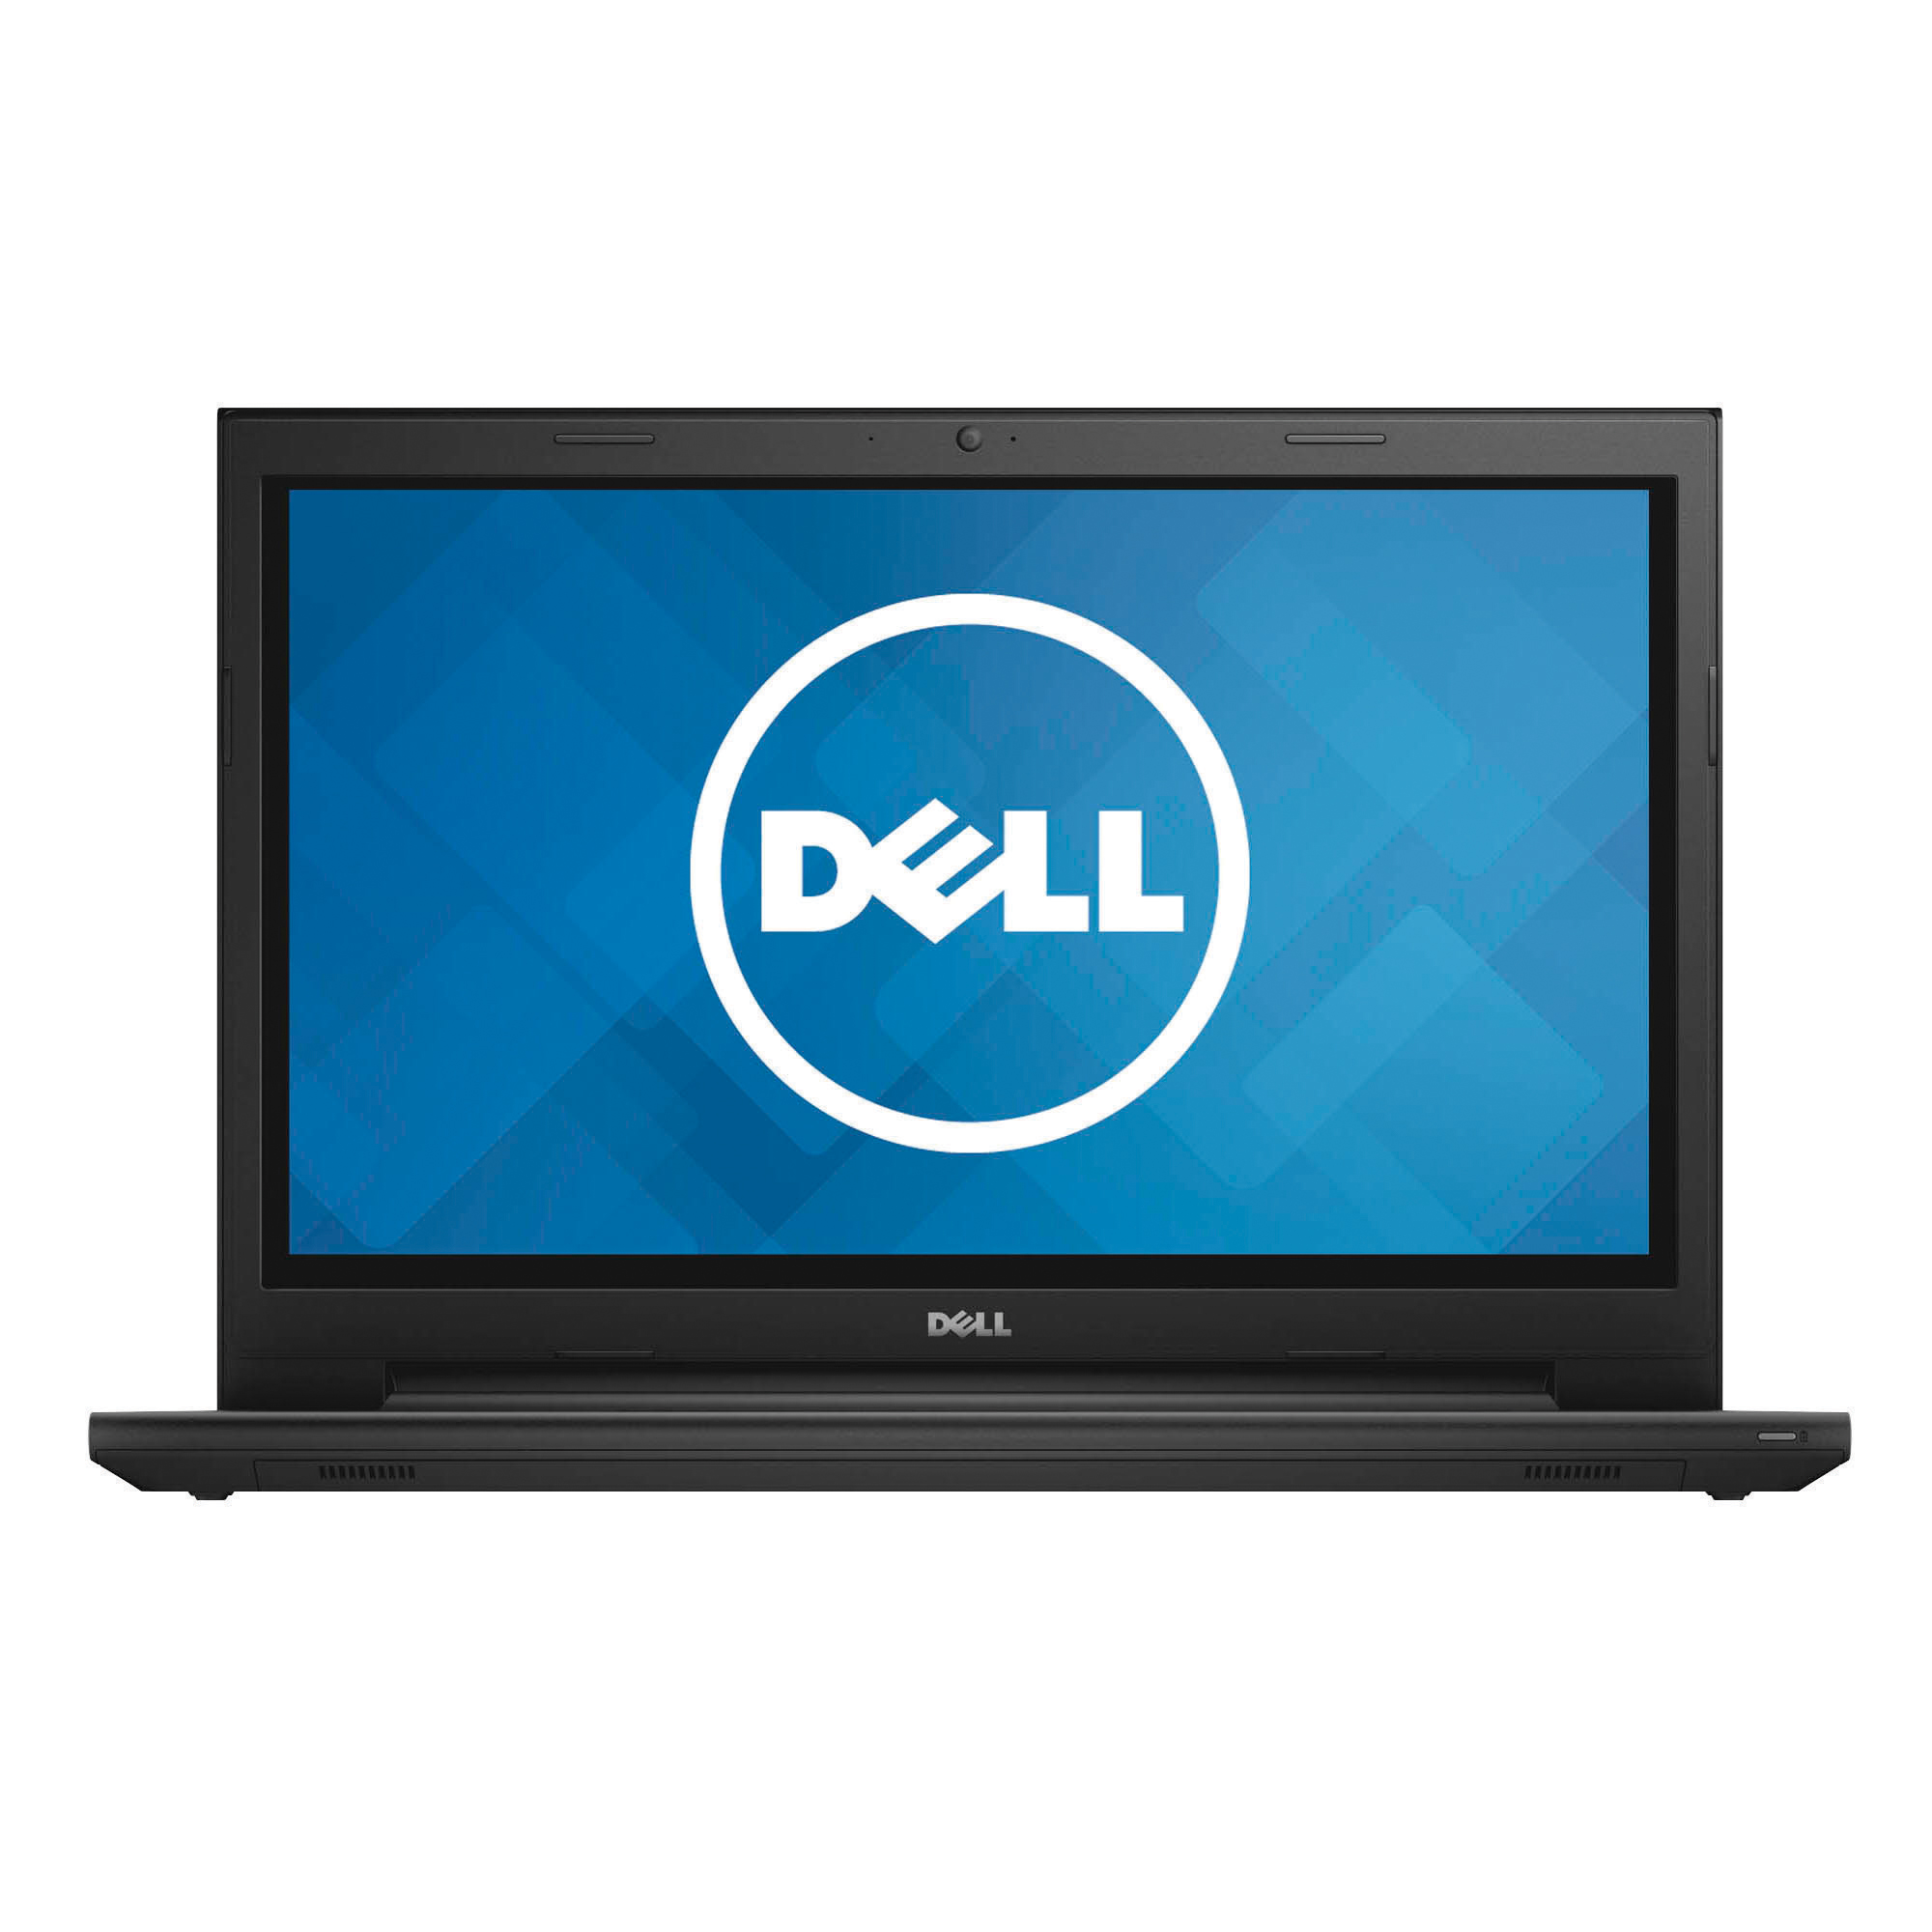 "Dell™ Inspiron 15 3000 Series Laptop, 15.6"" Touchscreen, AMD A6 Quad-Core, 4GB Memory, 500GB Hard Drive, Windows® 8"